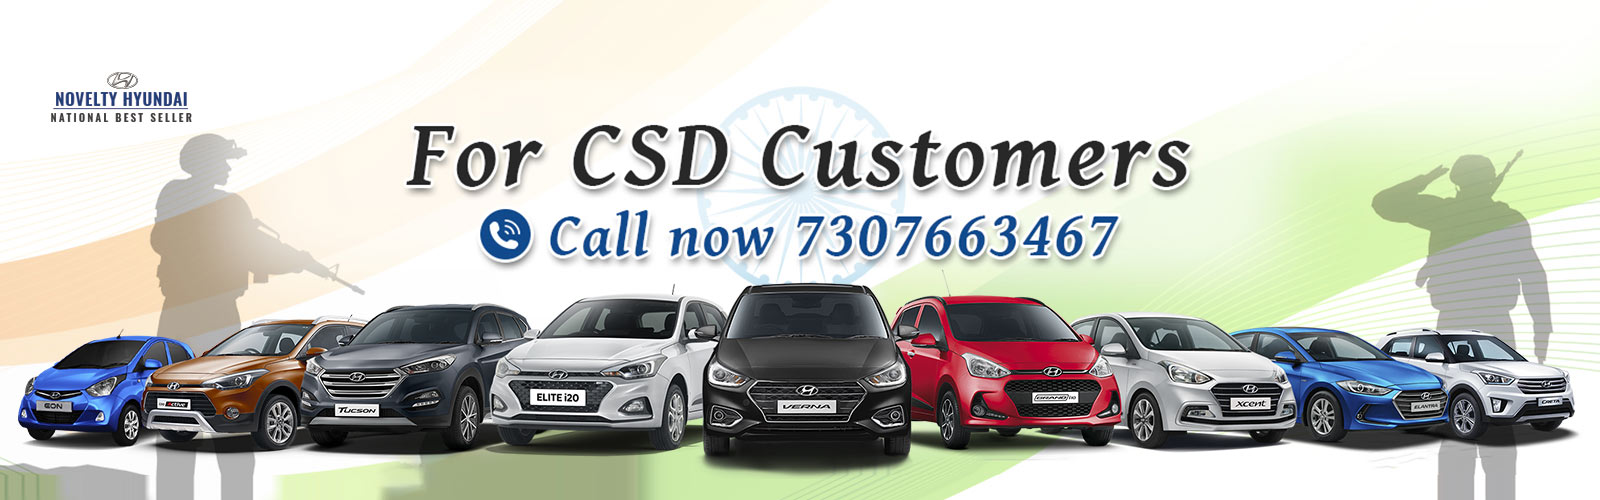 Novelty Hyundai | Contact us for any Feedback or Complaint